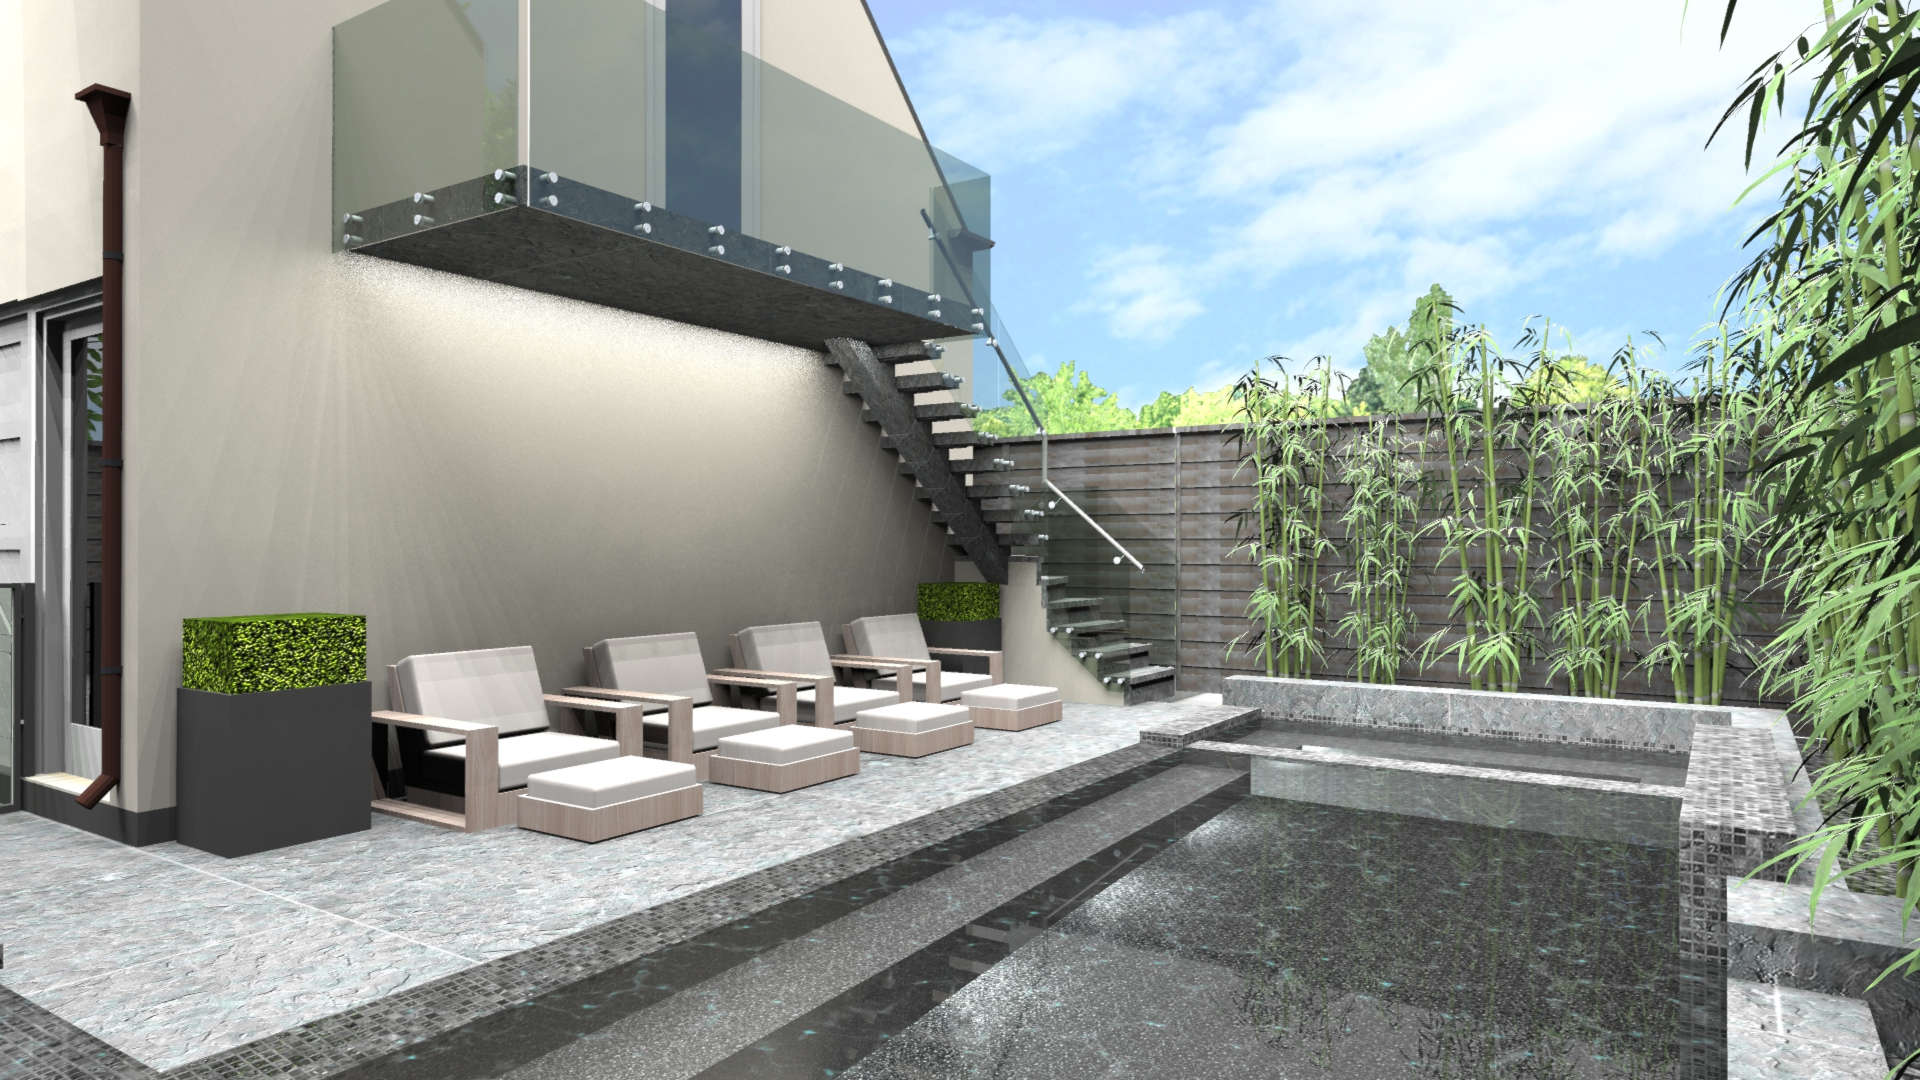 Contemporary Landscape Design in Dallas, TX - Matthew Murrey Design